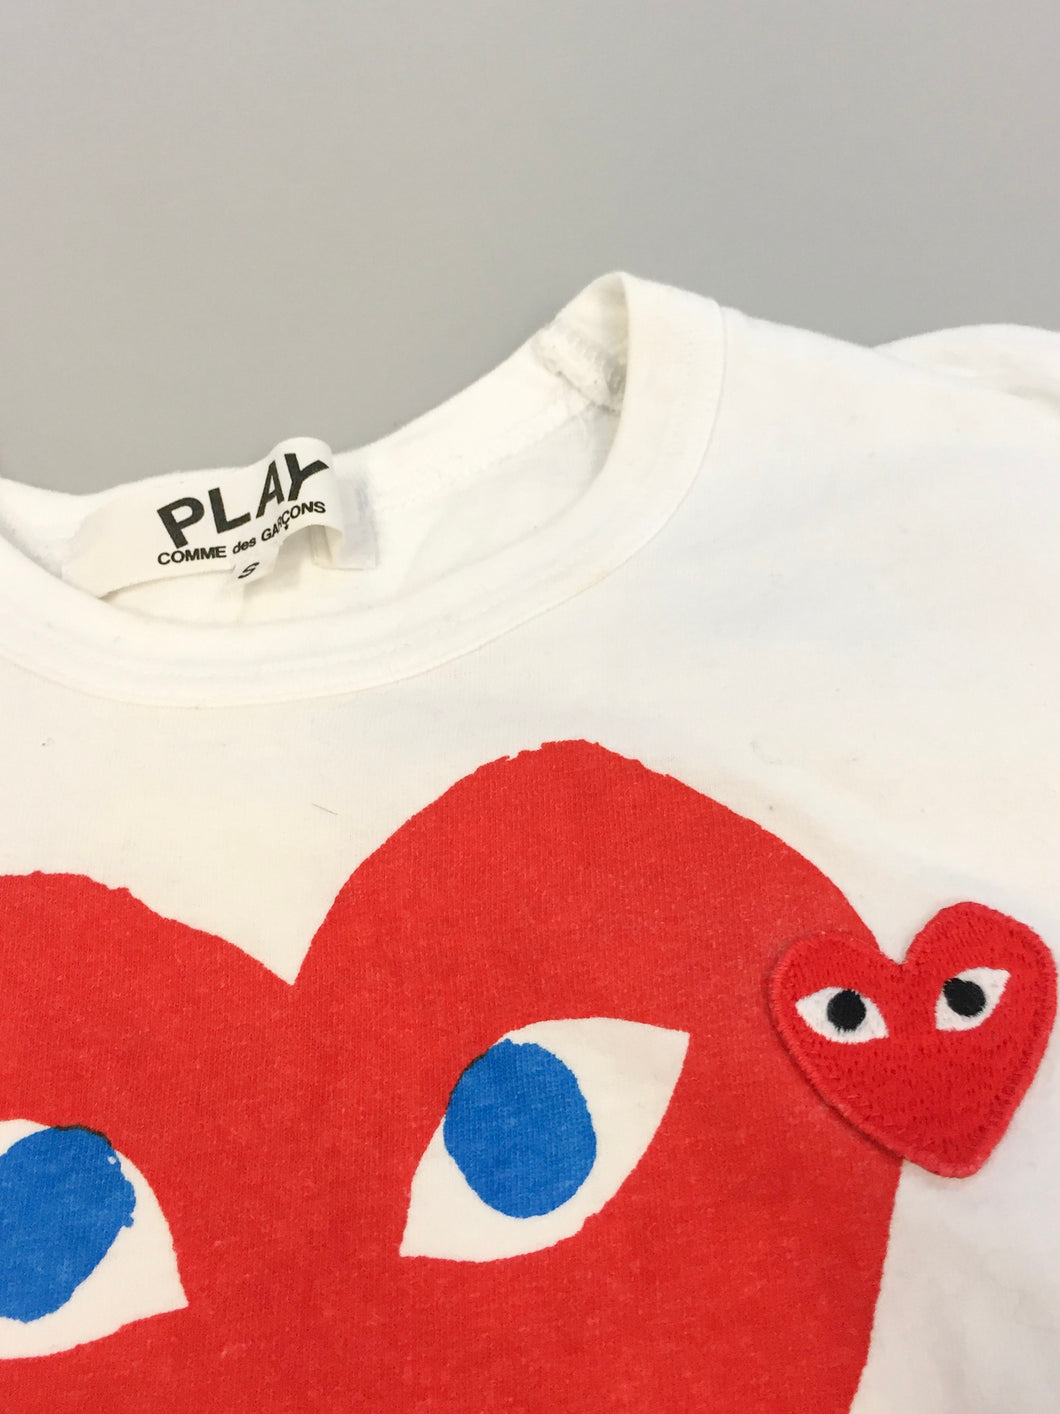 Comme des Garçons Play Two Hearts Tee